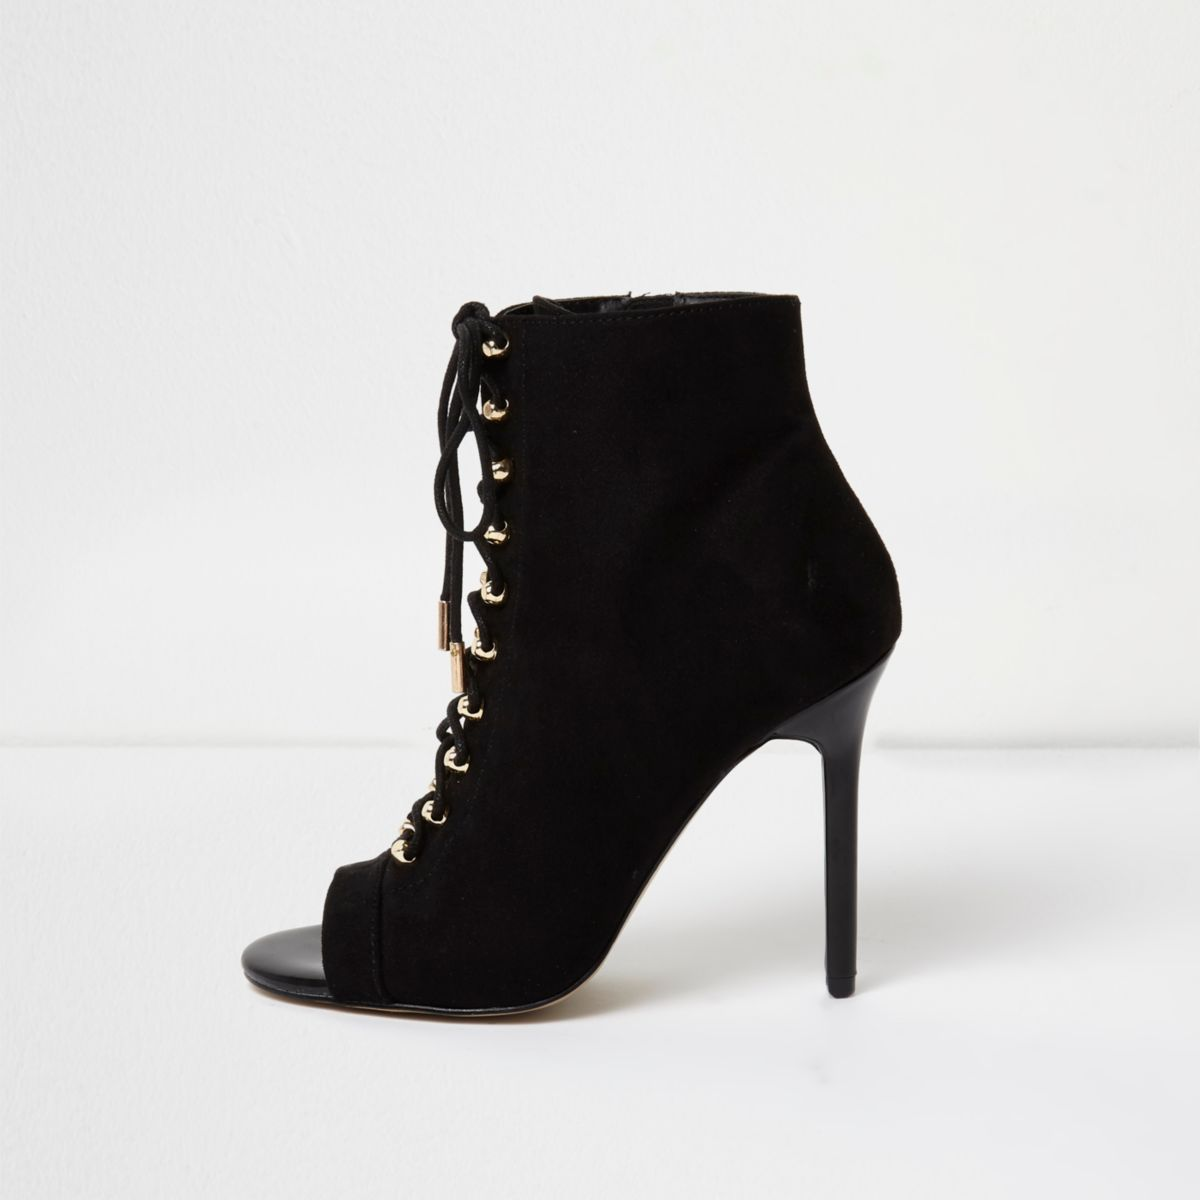 Black open toe lace-up heeled boots